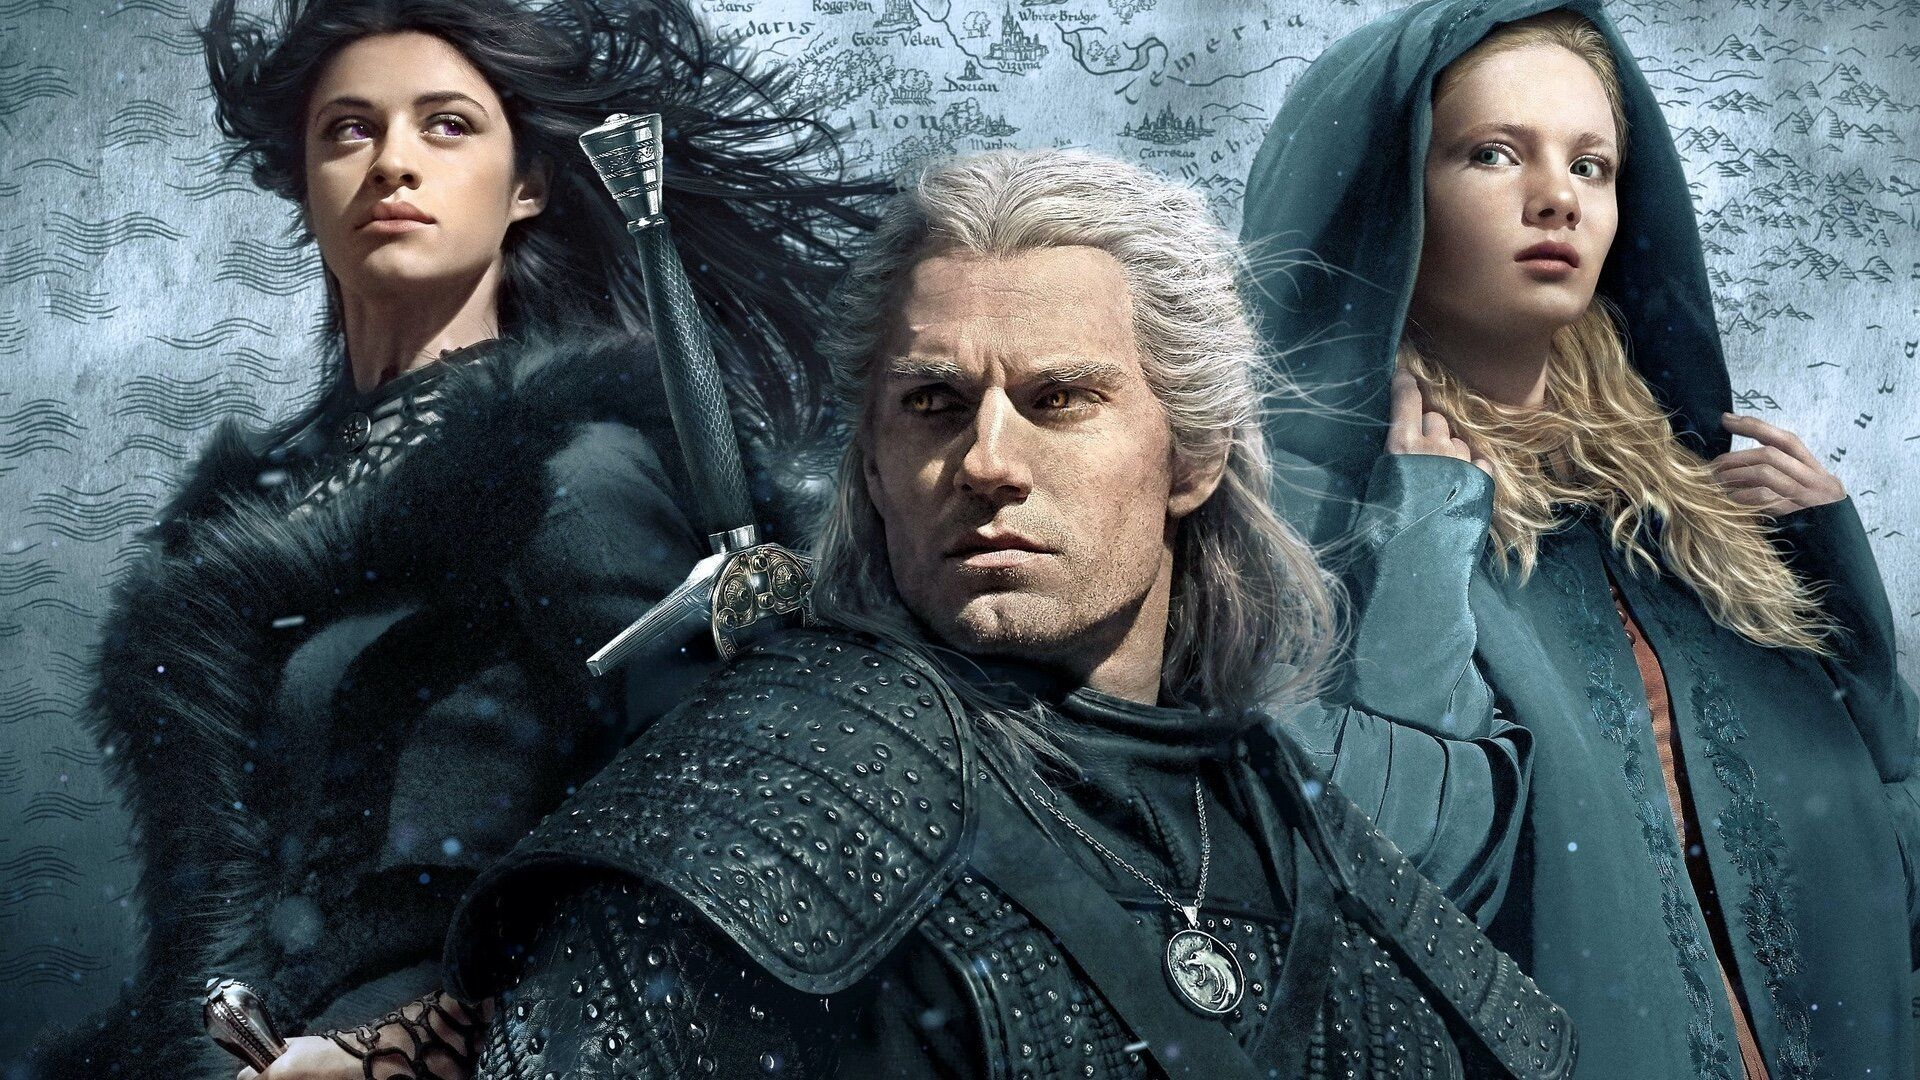 The Witcher Netflix Wallpapers - Top Free The Witcher Netflix Backgrounds -  WallpaperAccess